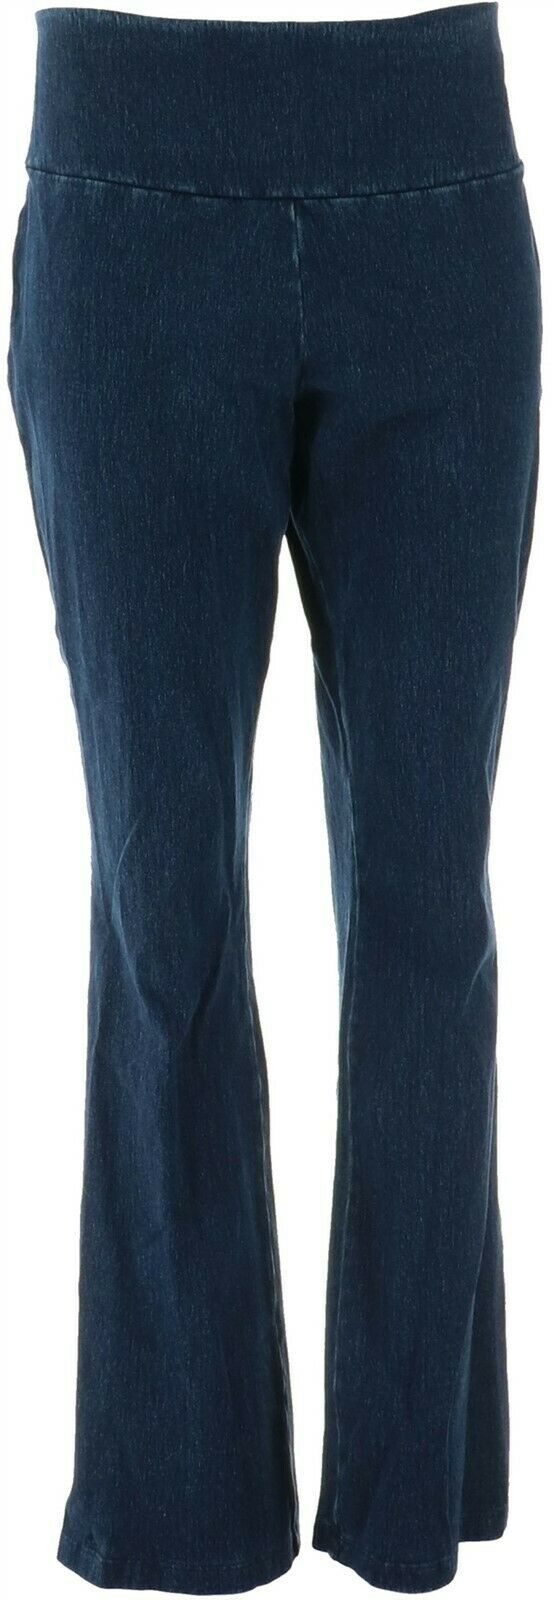 Primary image for Women with Control Prime Stretch Denim Low Bell Jeans Indigo 2X NEW A342060